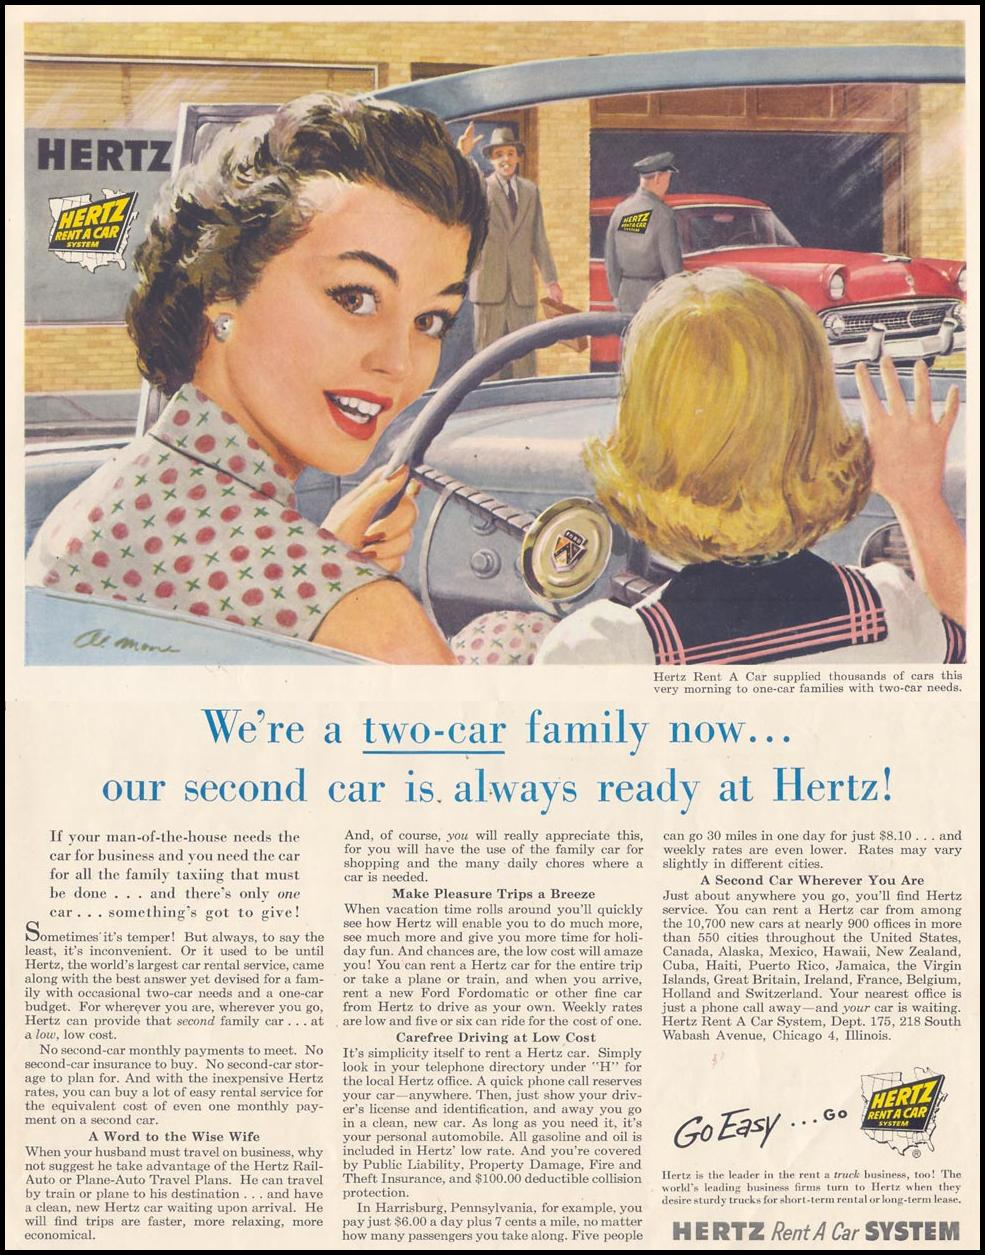 AUTO RENTAL SATURDAY EVENING POST 07/23/1955 INSIDE BACK